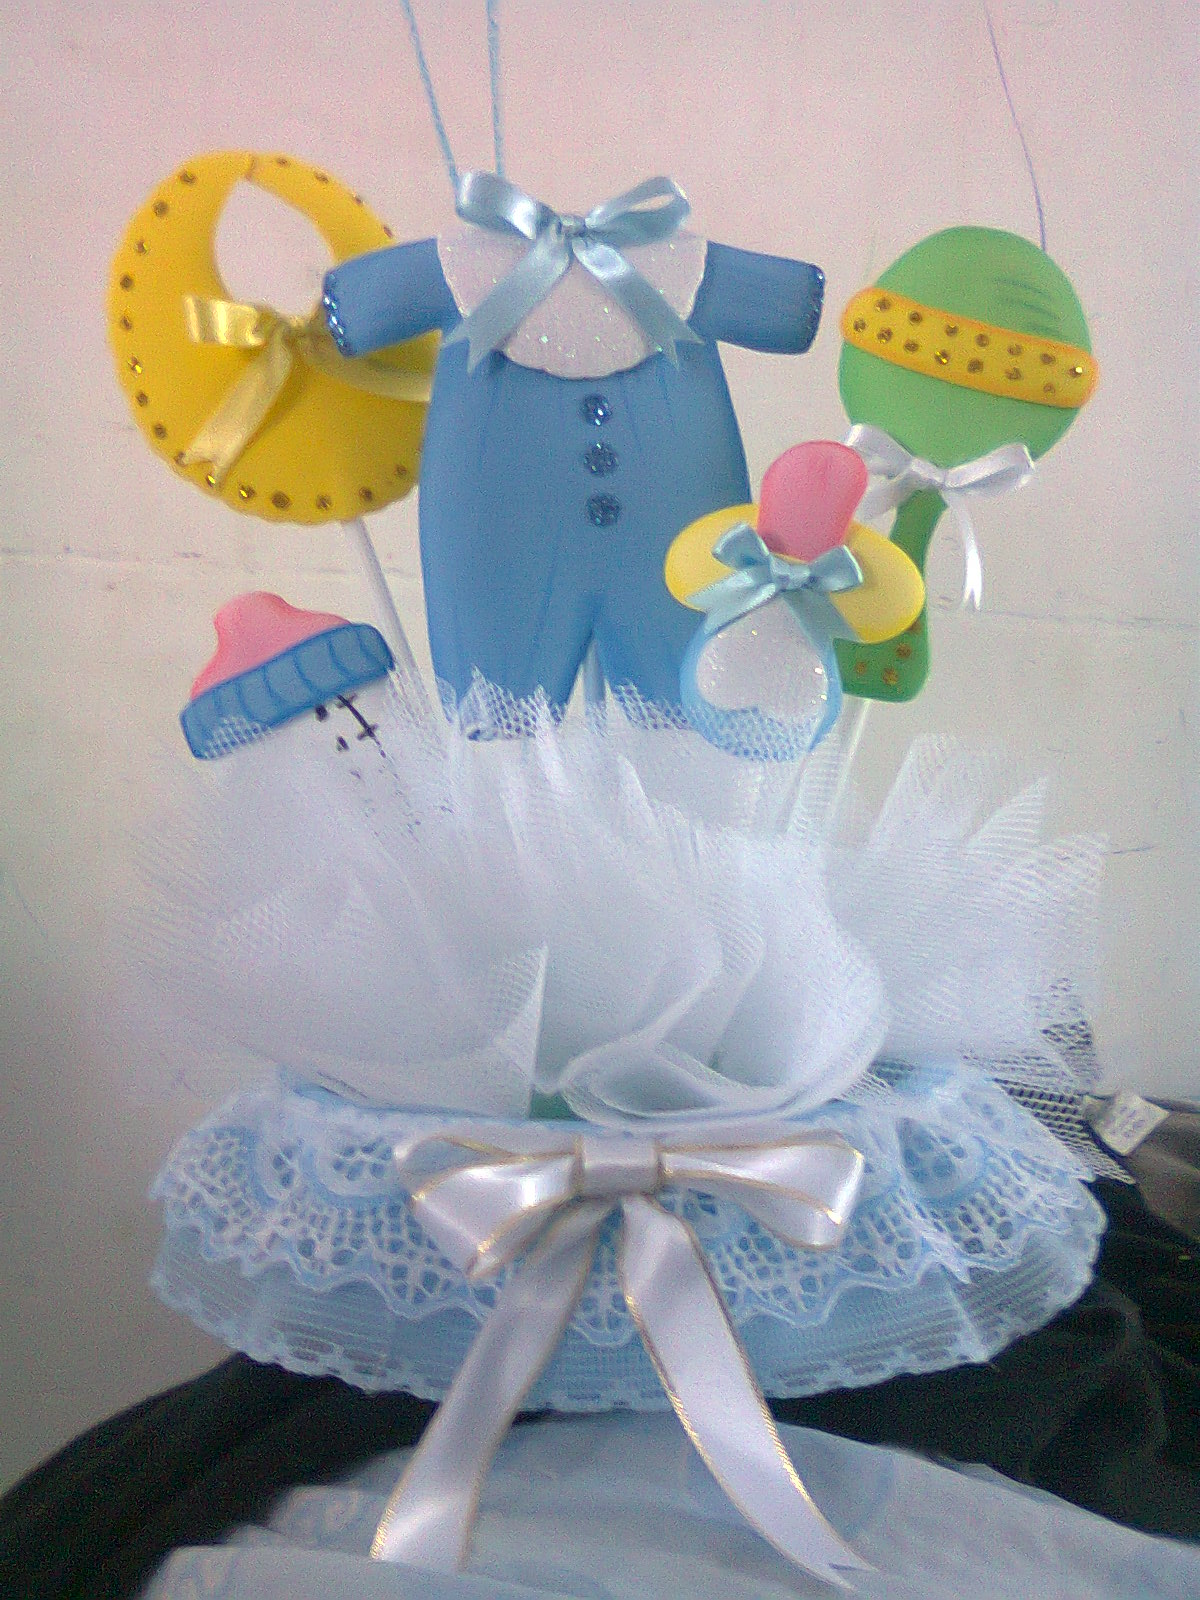 Todo foami centro de mesa para baby shower ni o for Mesa baby shower nino